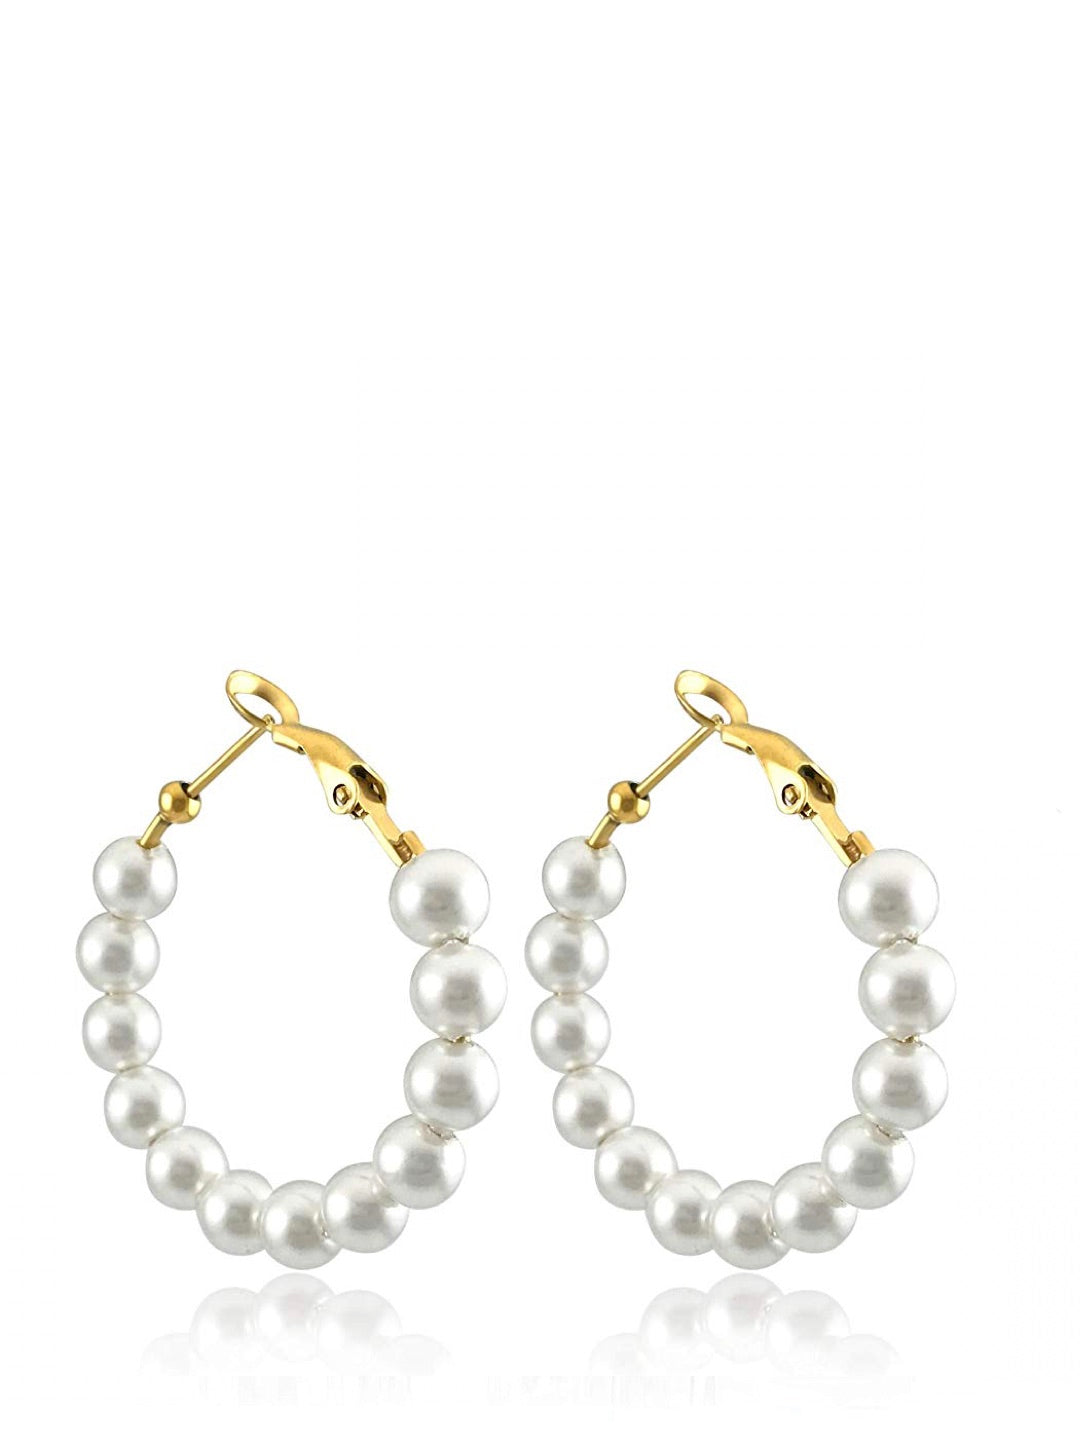 18K Gold Pearl Hoop Earrings